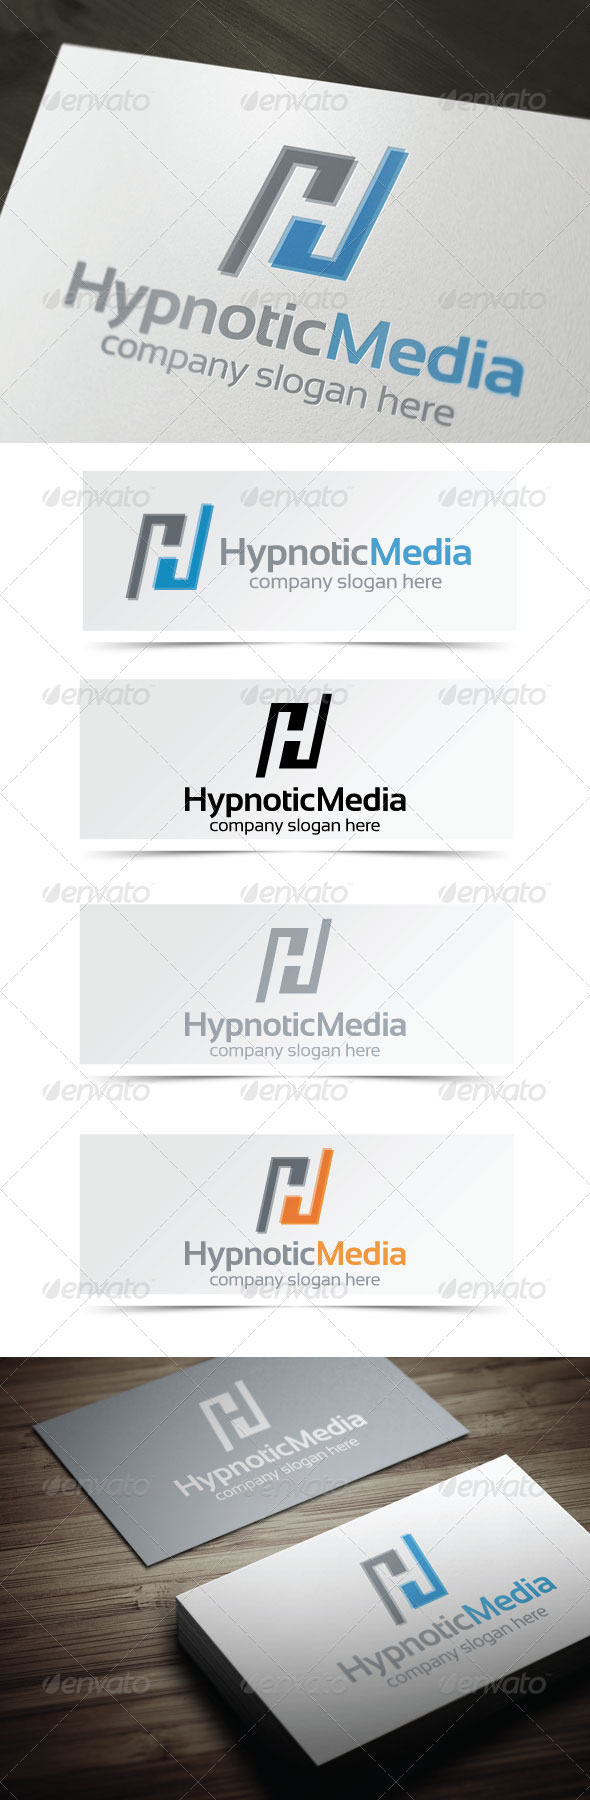 GraphicRiver Hypnotic Media 4135360